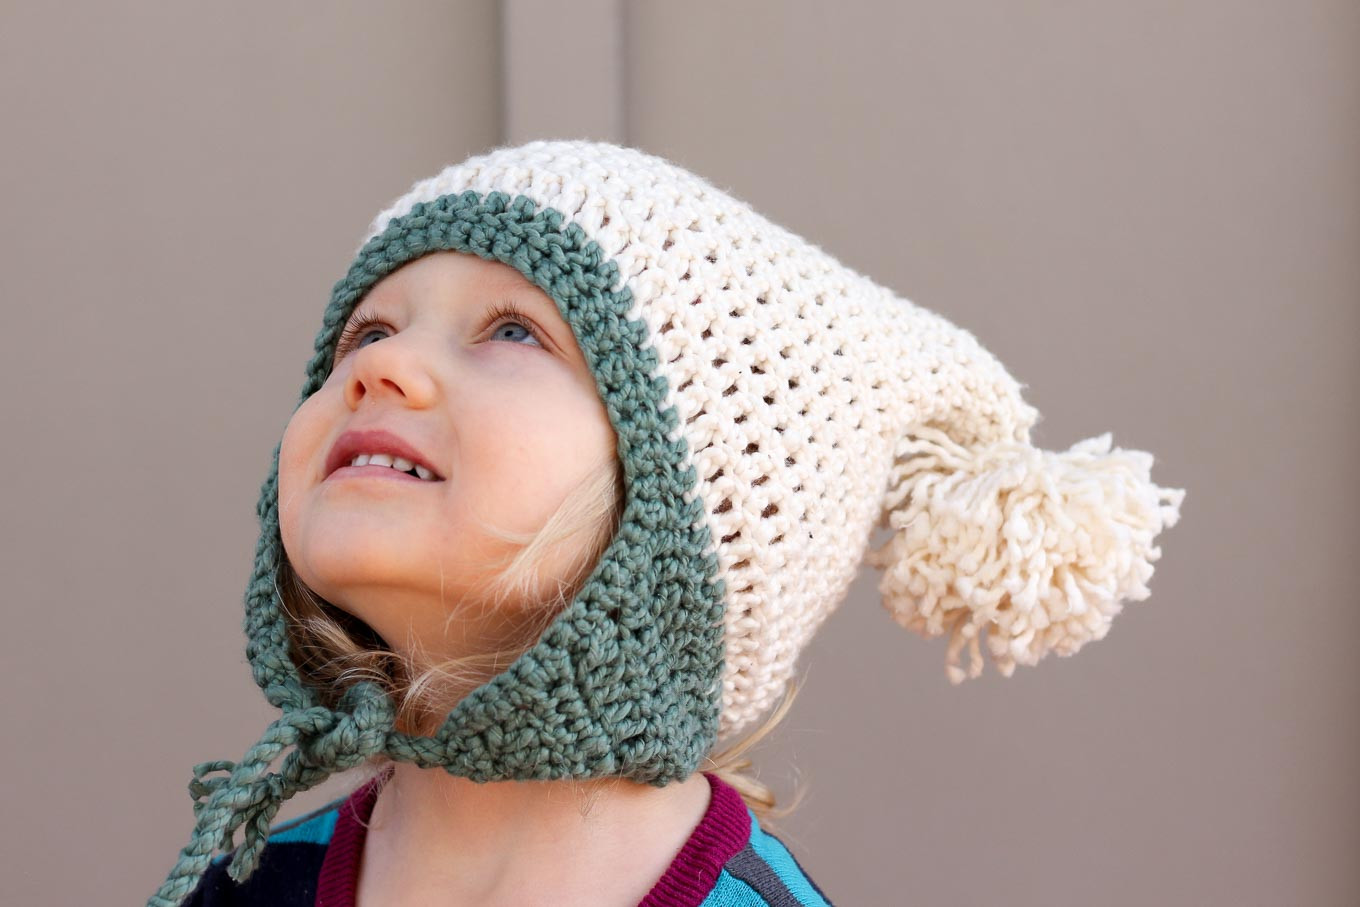 """Hat Patterns Awesome Free Beginner Crochet Beanie Hat Pattern """"pom Pom Party"""" Of Luxury 49 Pictures Hat Patterns"""